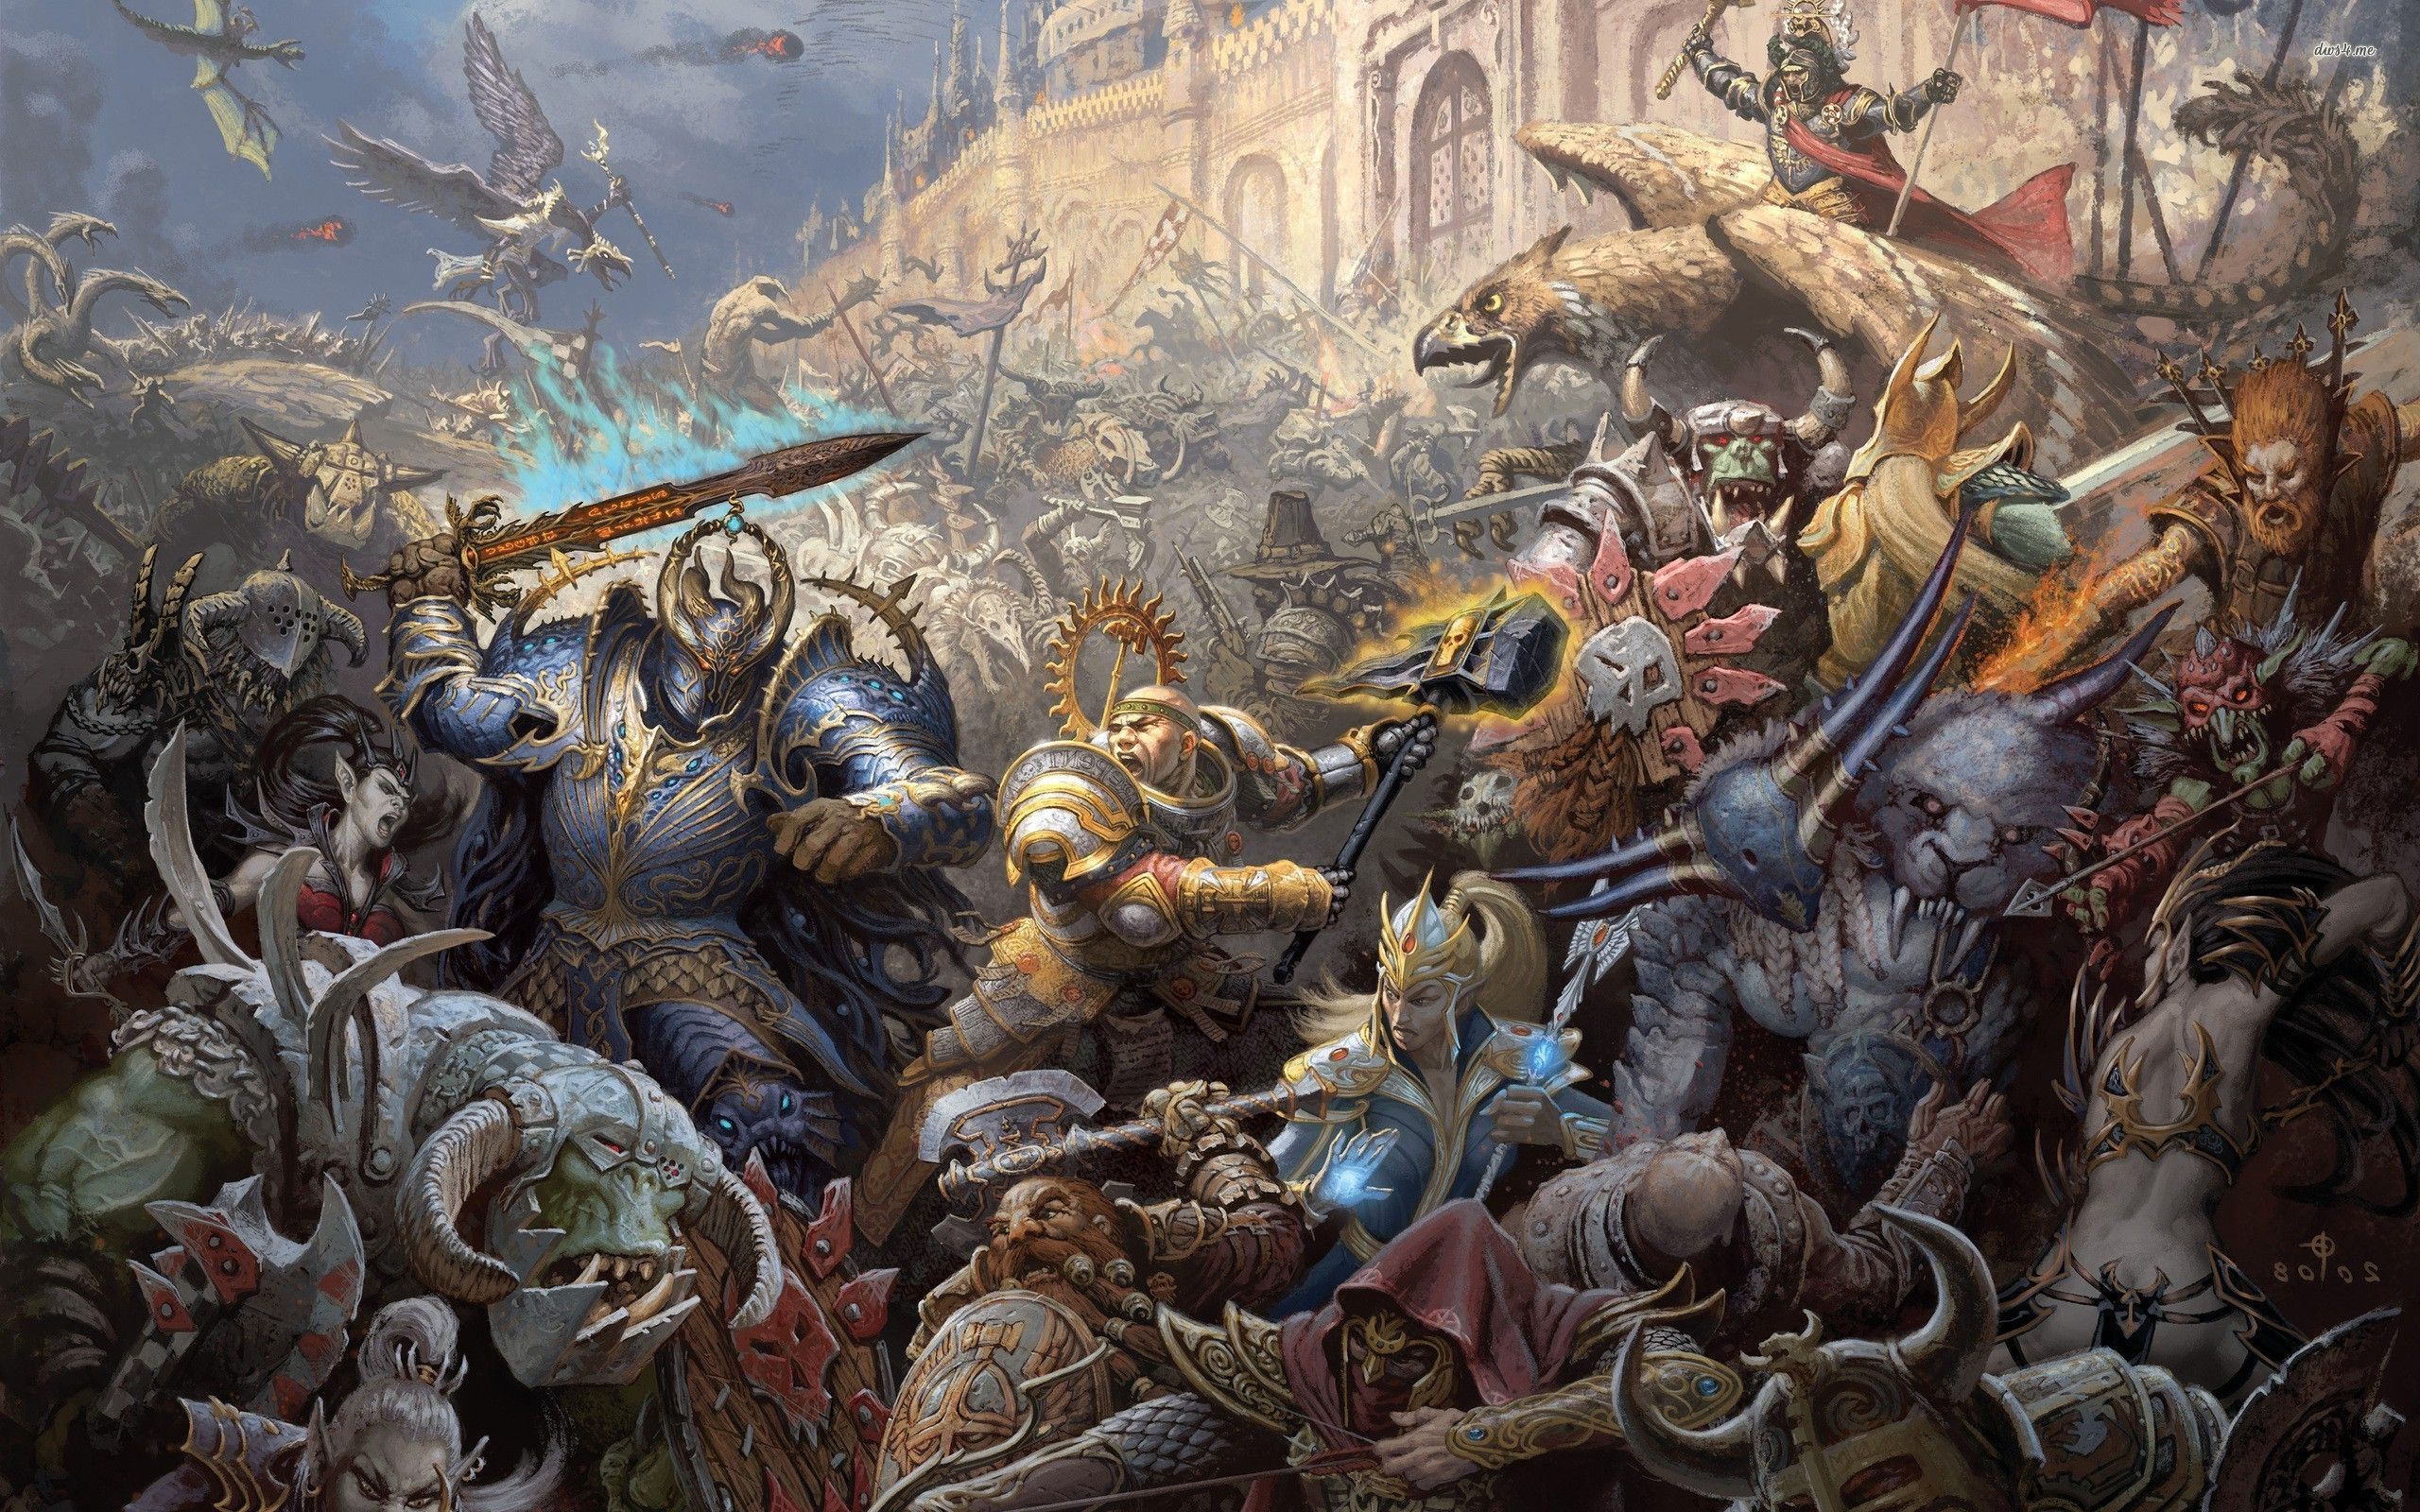 Warhammer Age Of Sigmar Wallpaper Posted By Christopher Cunningham